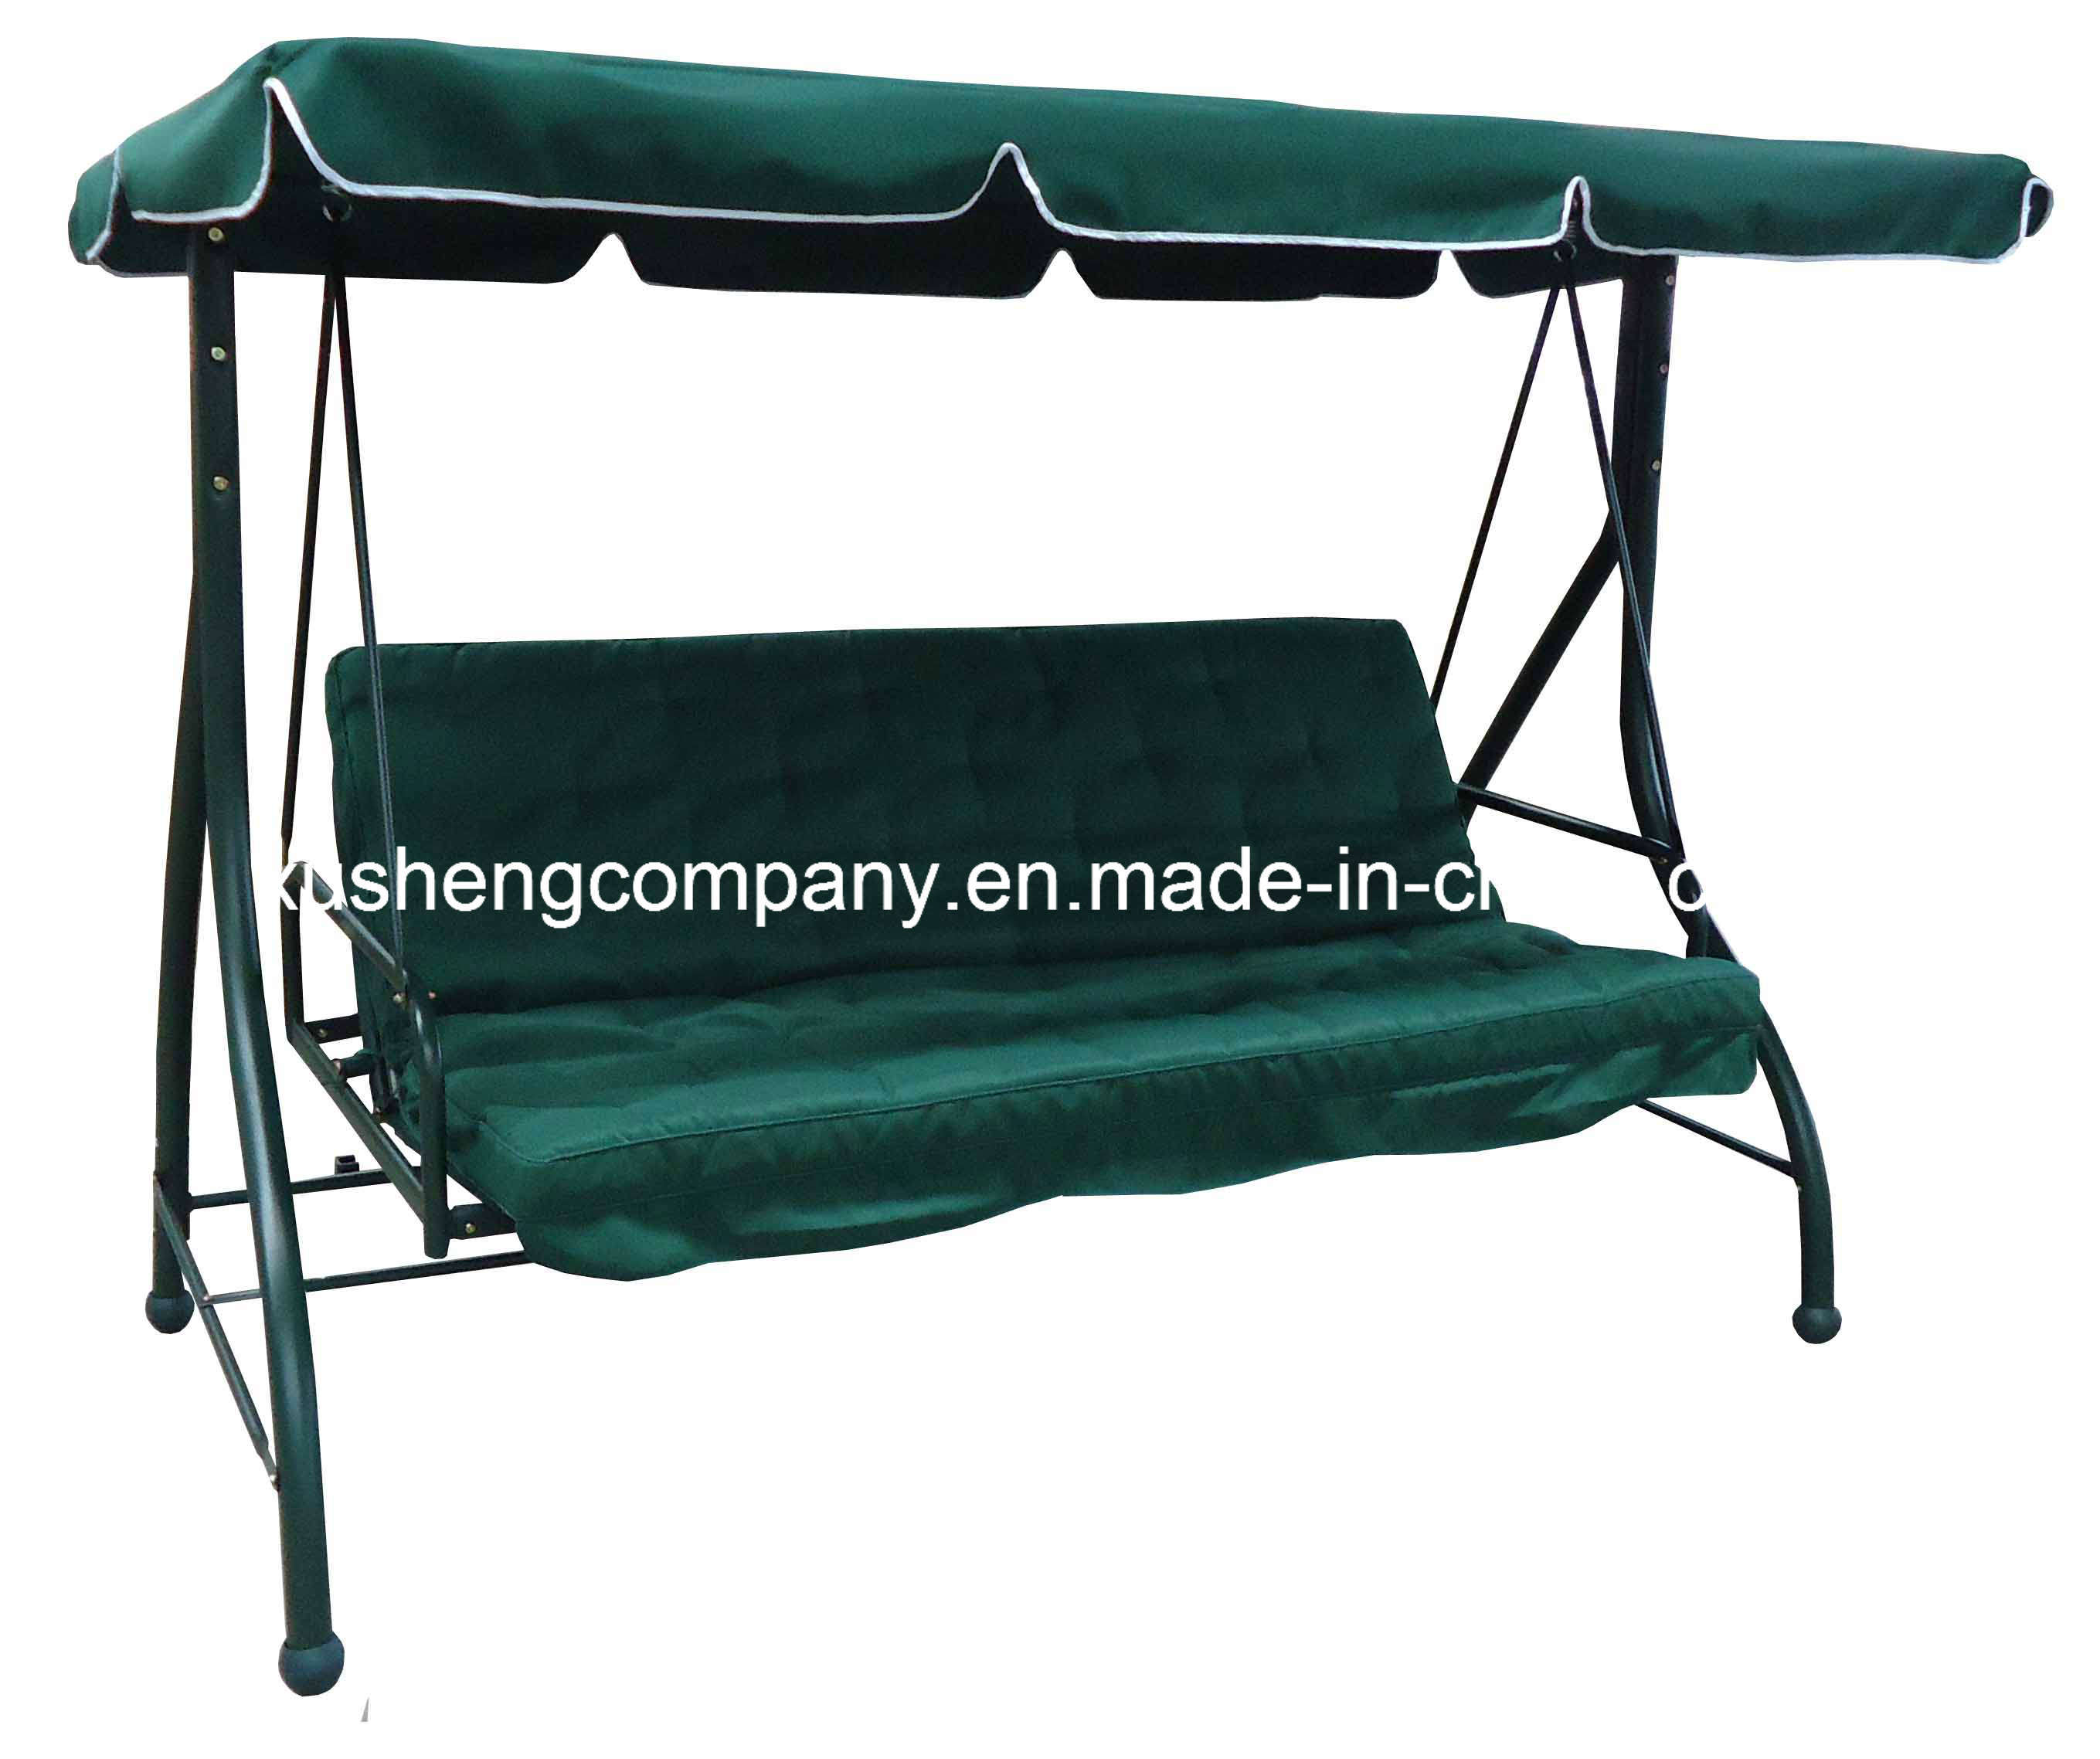 3 Seater Deluxe Garden Swing Chair with 2 Function (bed&chair)